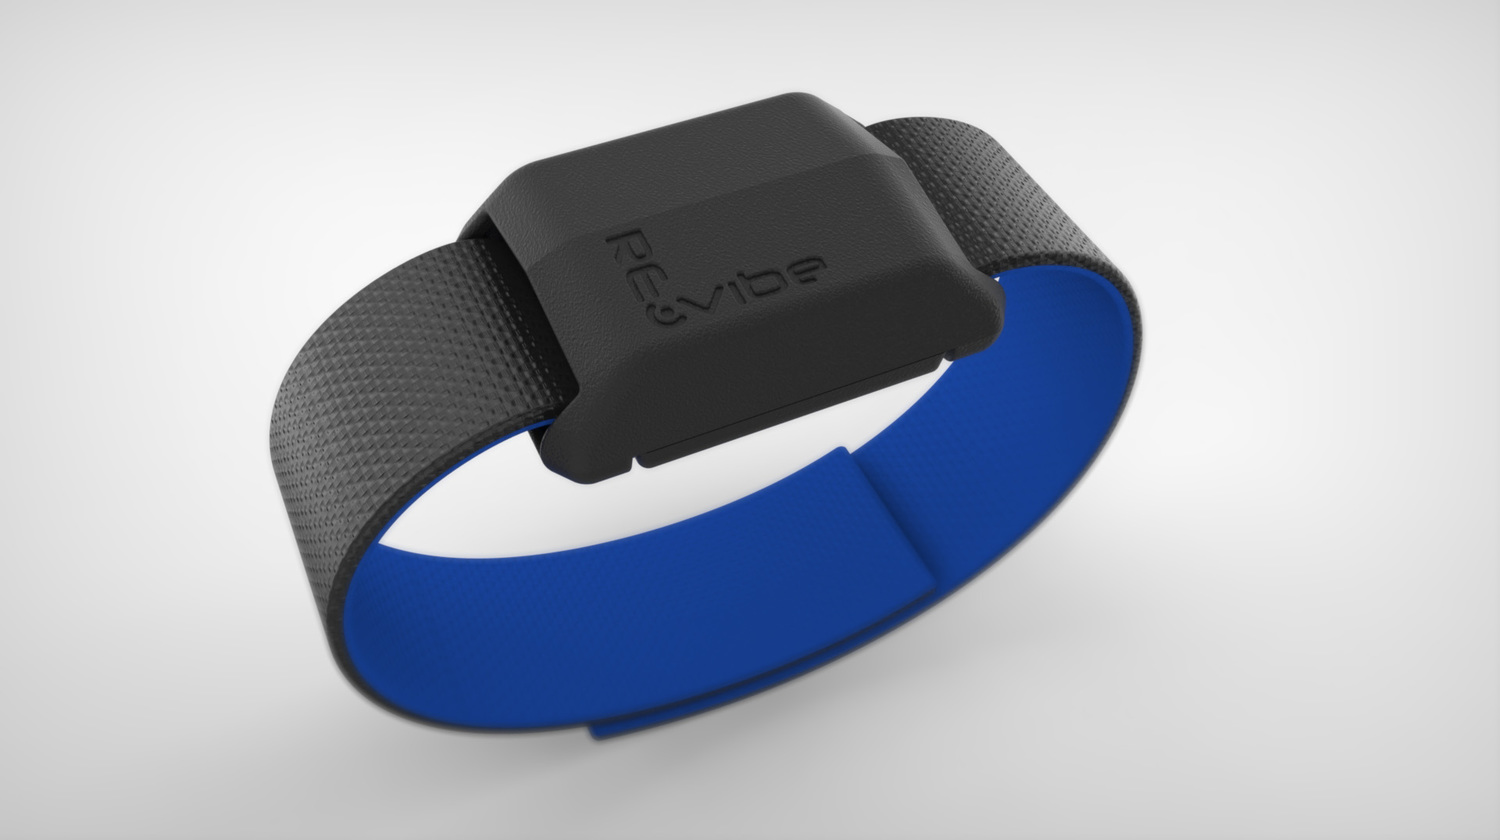 RE-Vibe is the wearable you have been looking all your life